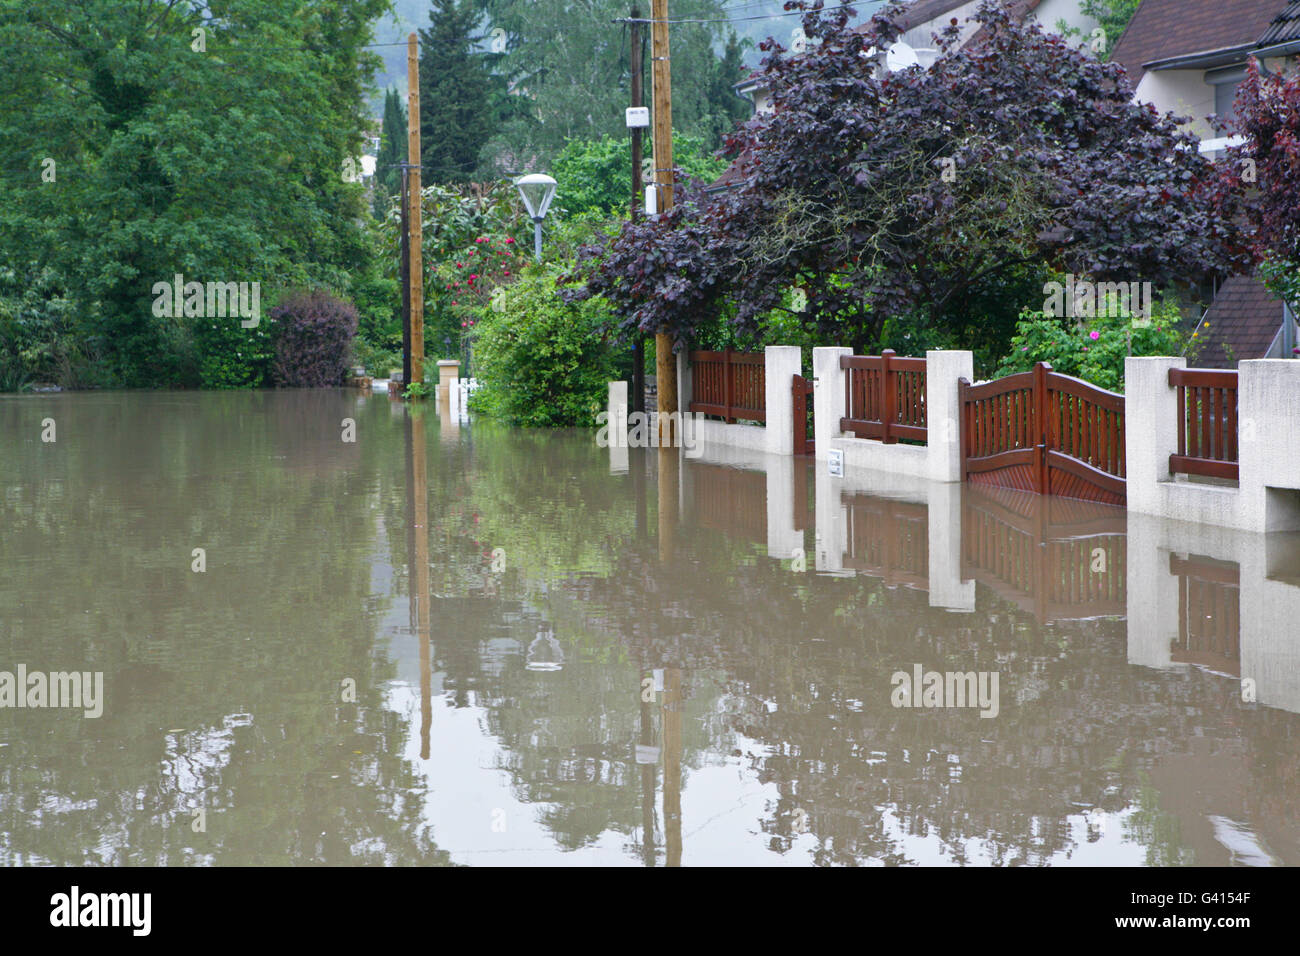 Flooded street in France - Stock Image